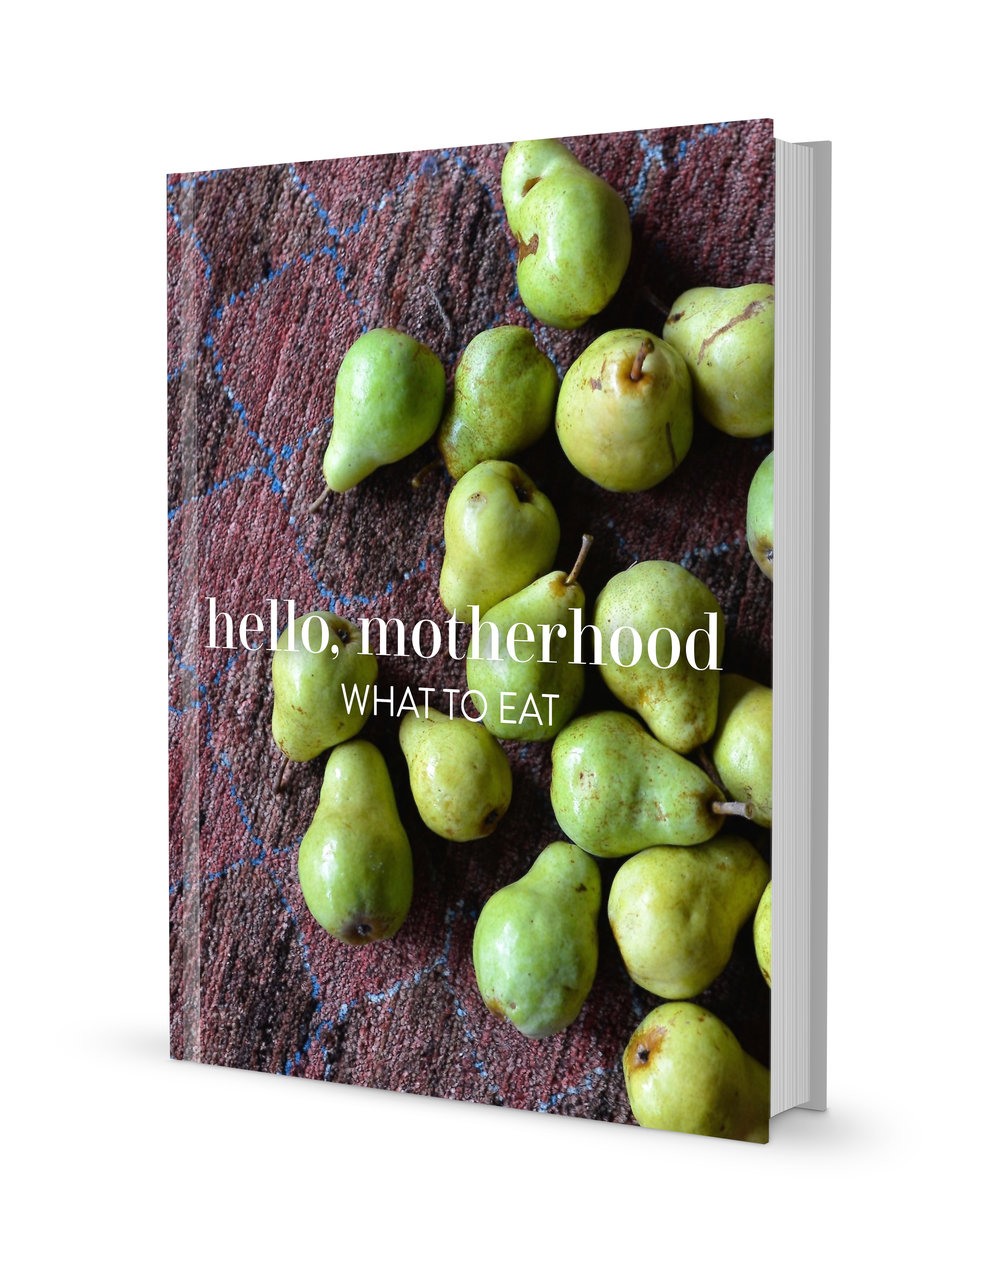 hello-motherhood-what-to-eat.jpg